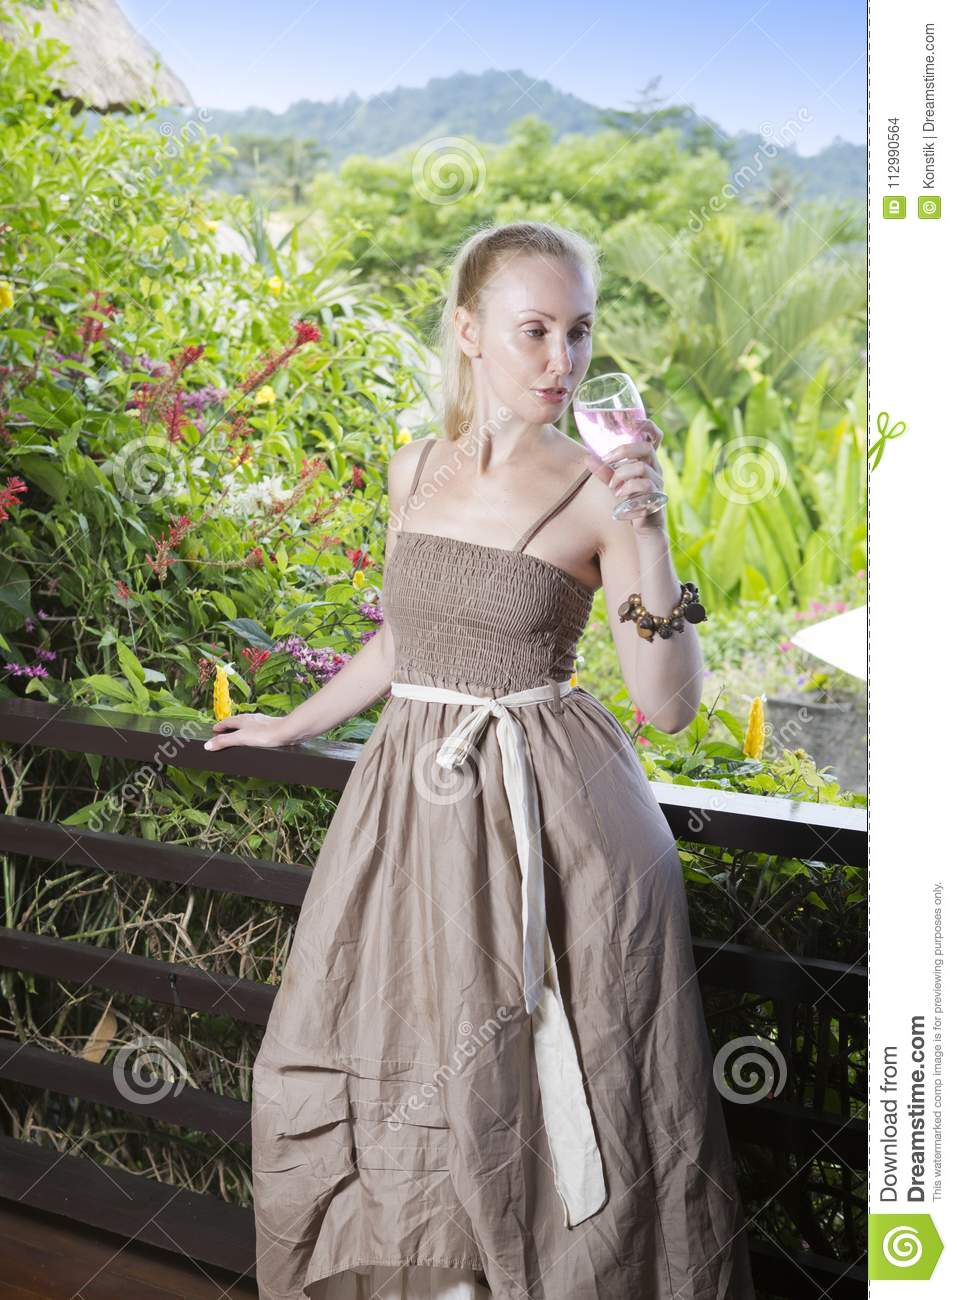 The young beautiful woman in a long dress with a glass of wine looks at the tropical nature